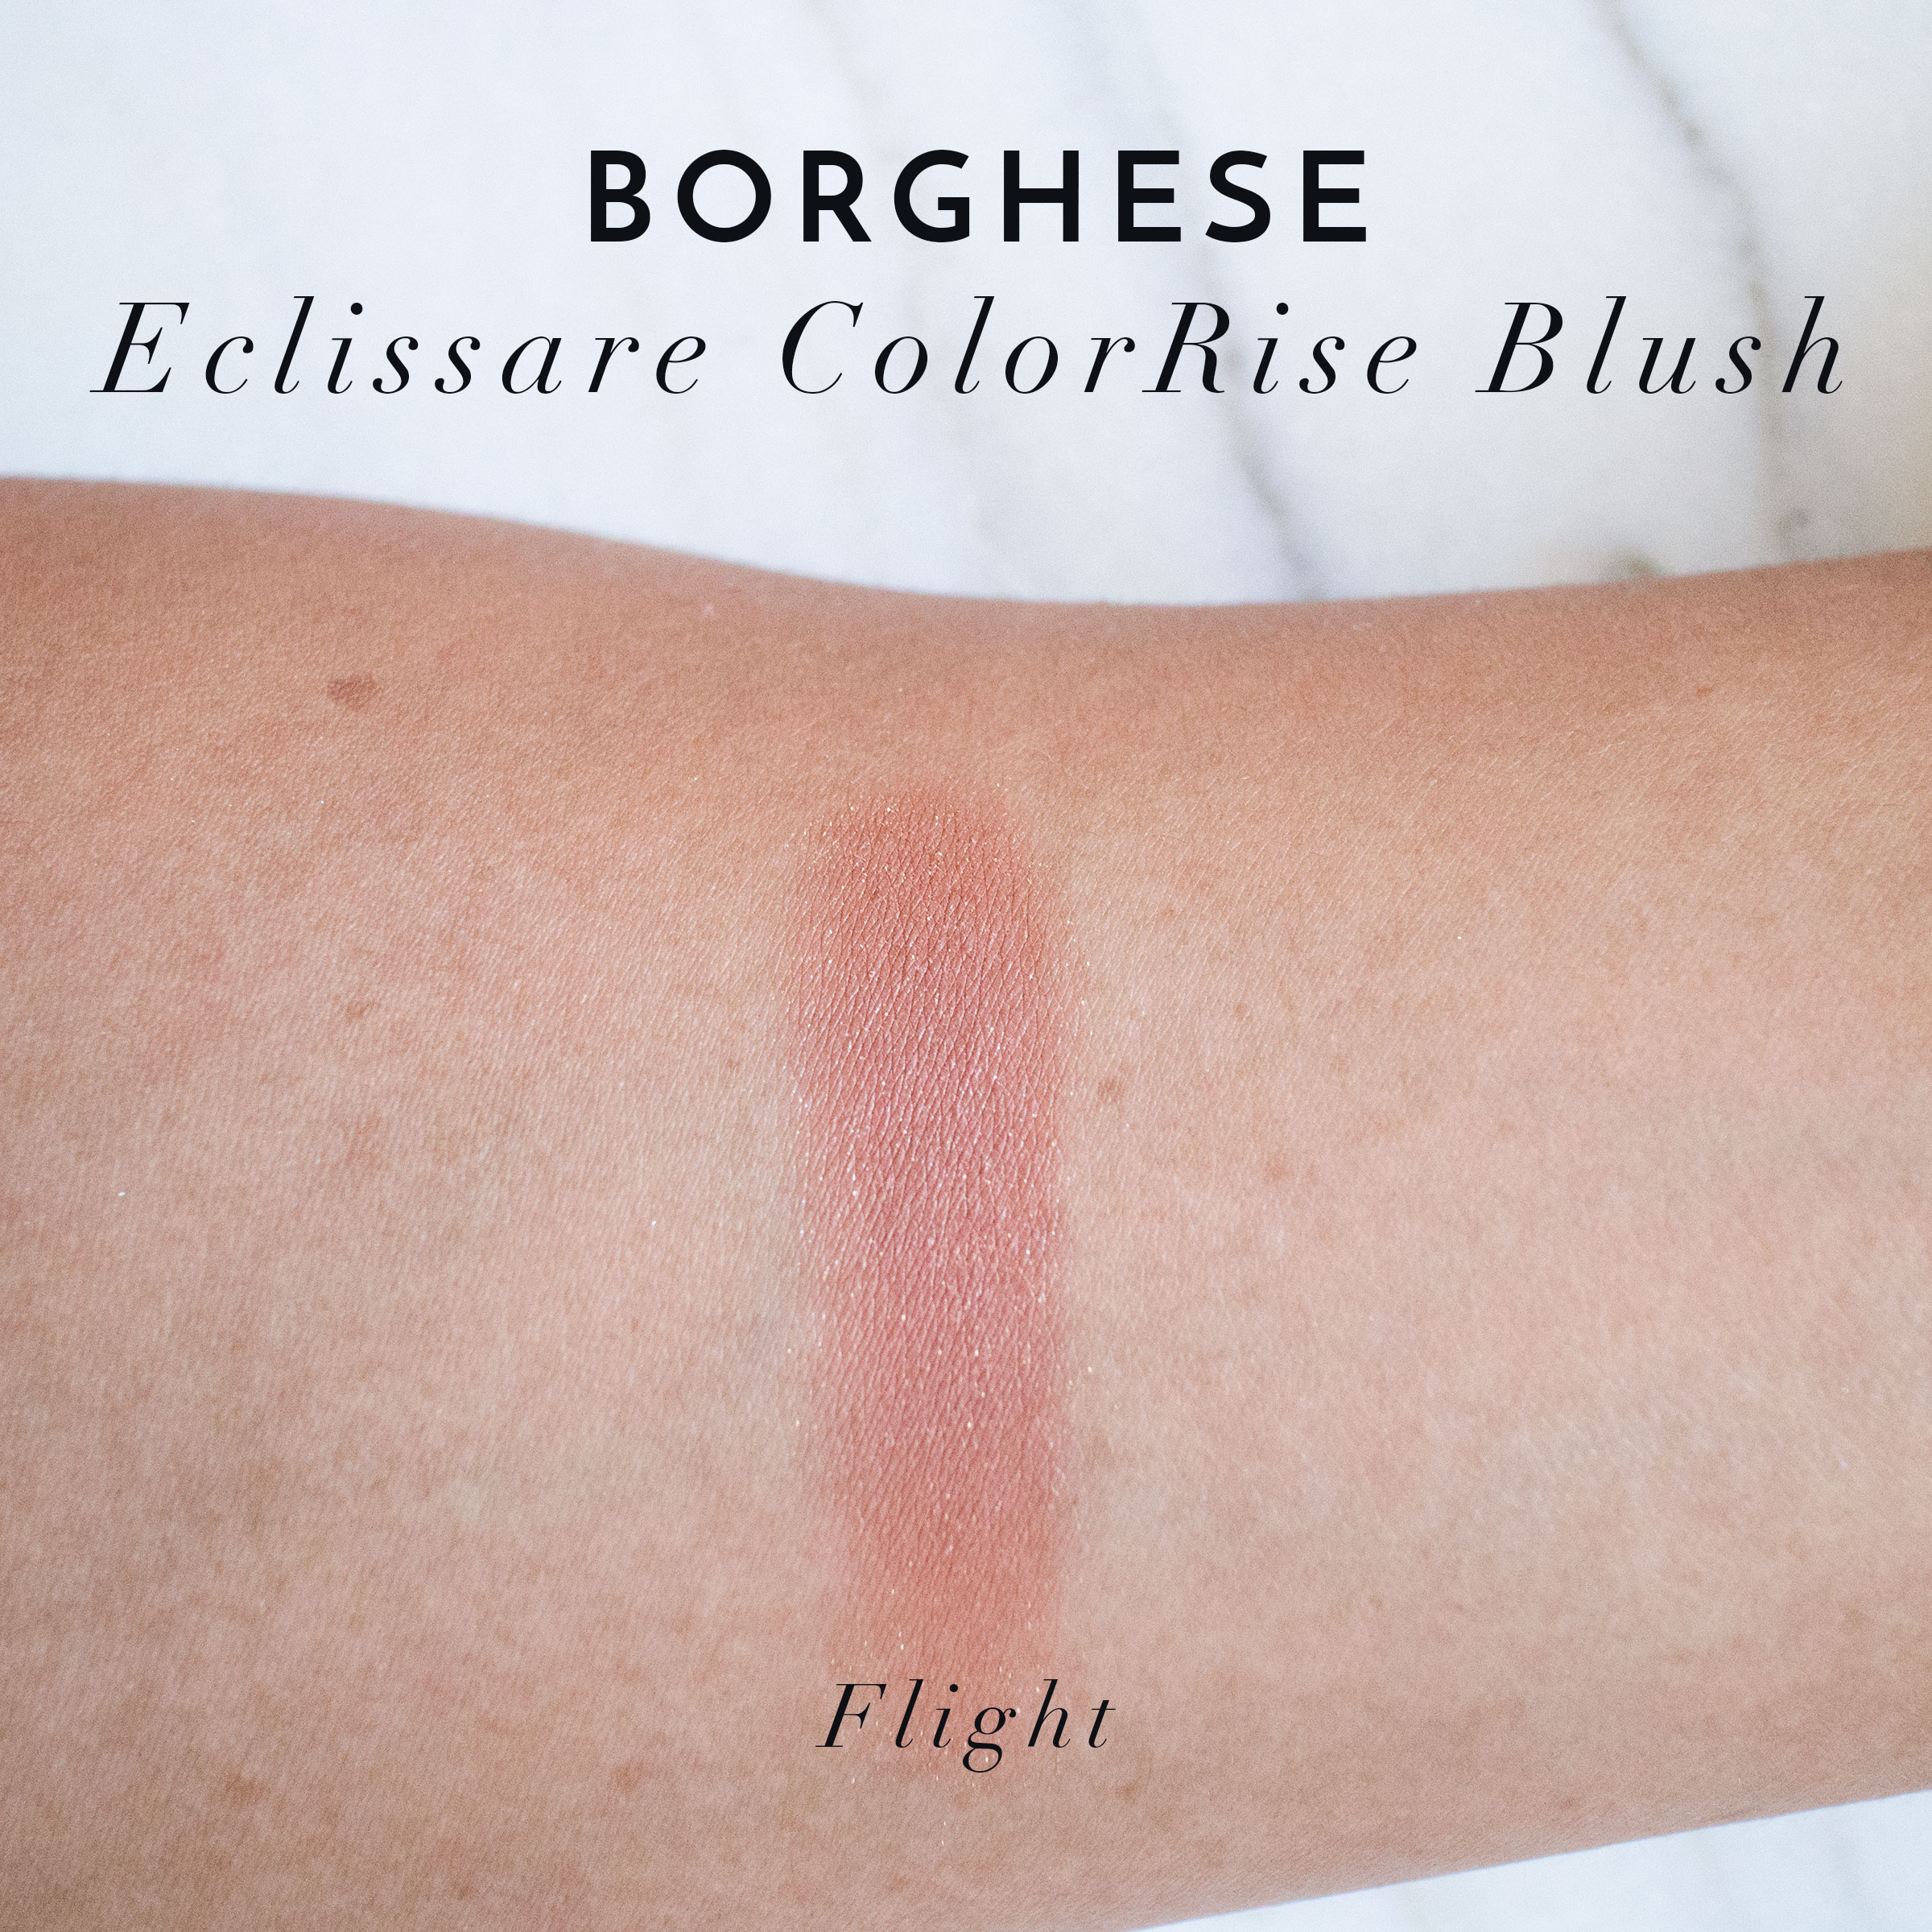 The Beauty Vanity | Borghese Summer 2015 Eclissare ColorRise Blush Flight Swatches Review